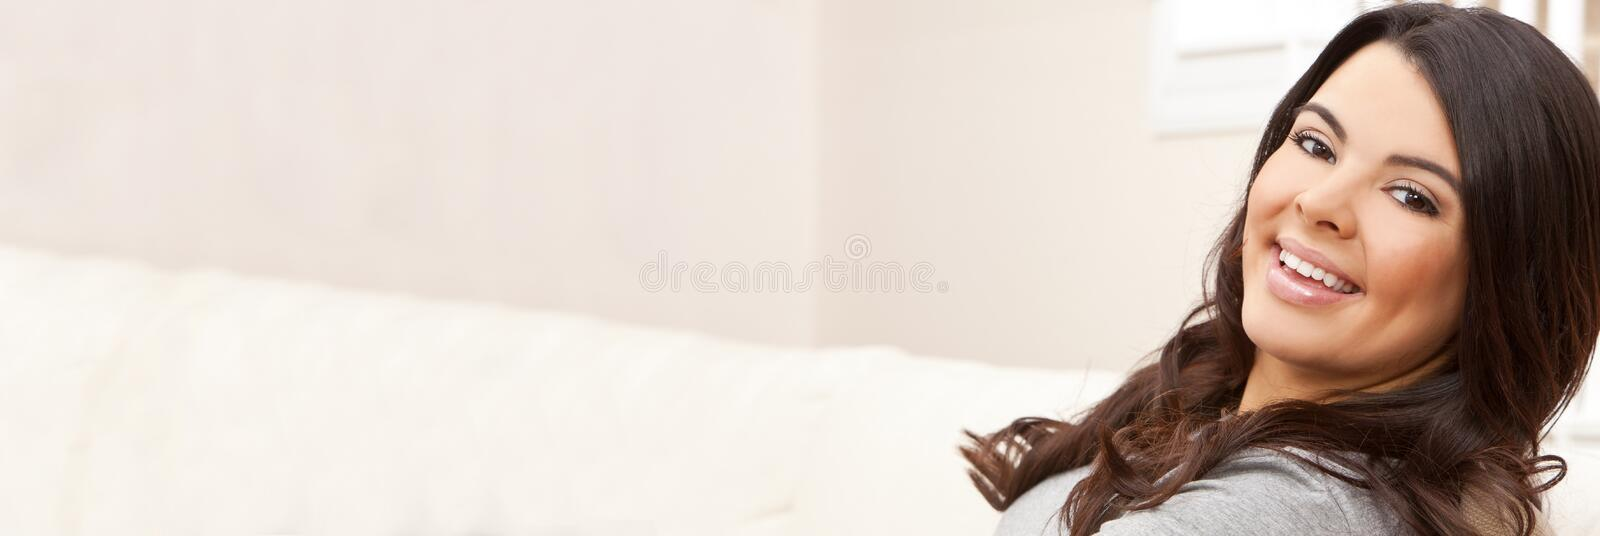 Happy Hispanic Woman Sitting on a Sofa at Home Panorama stock images